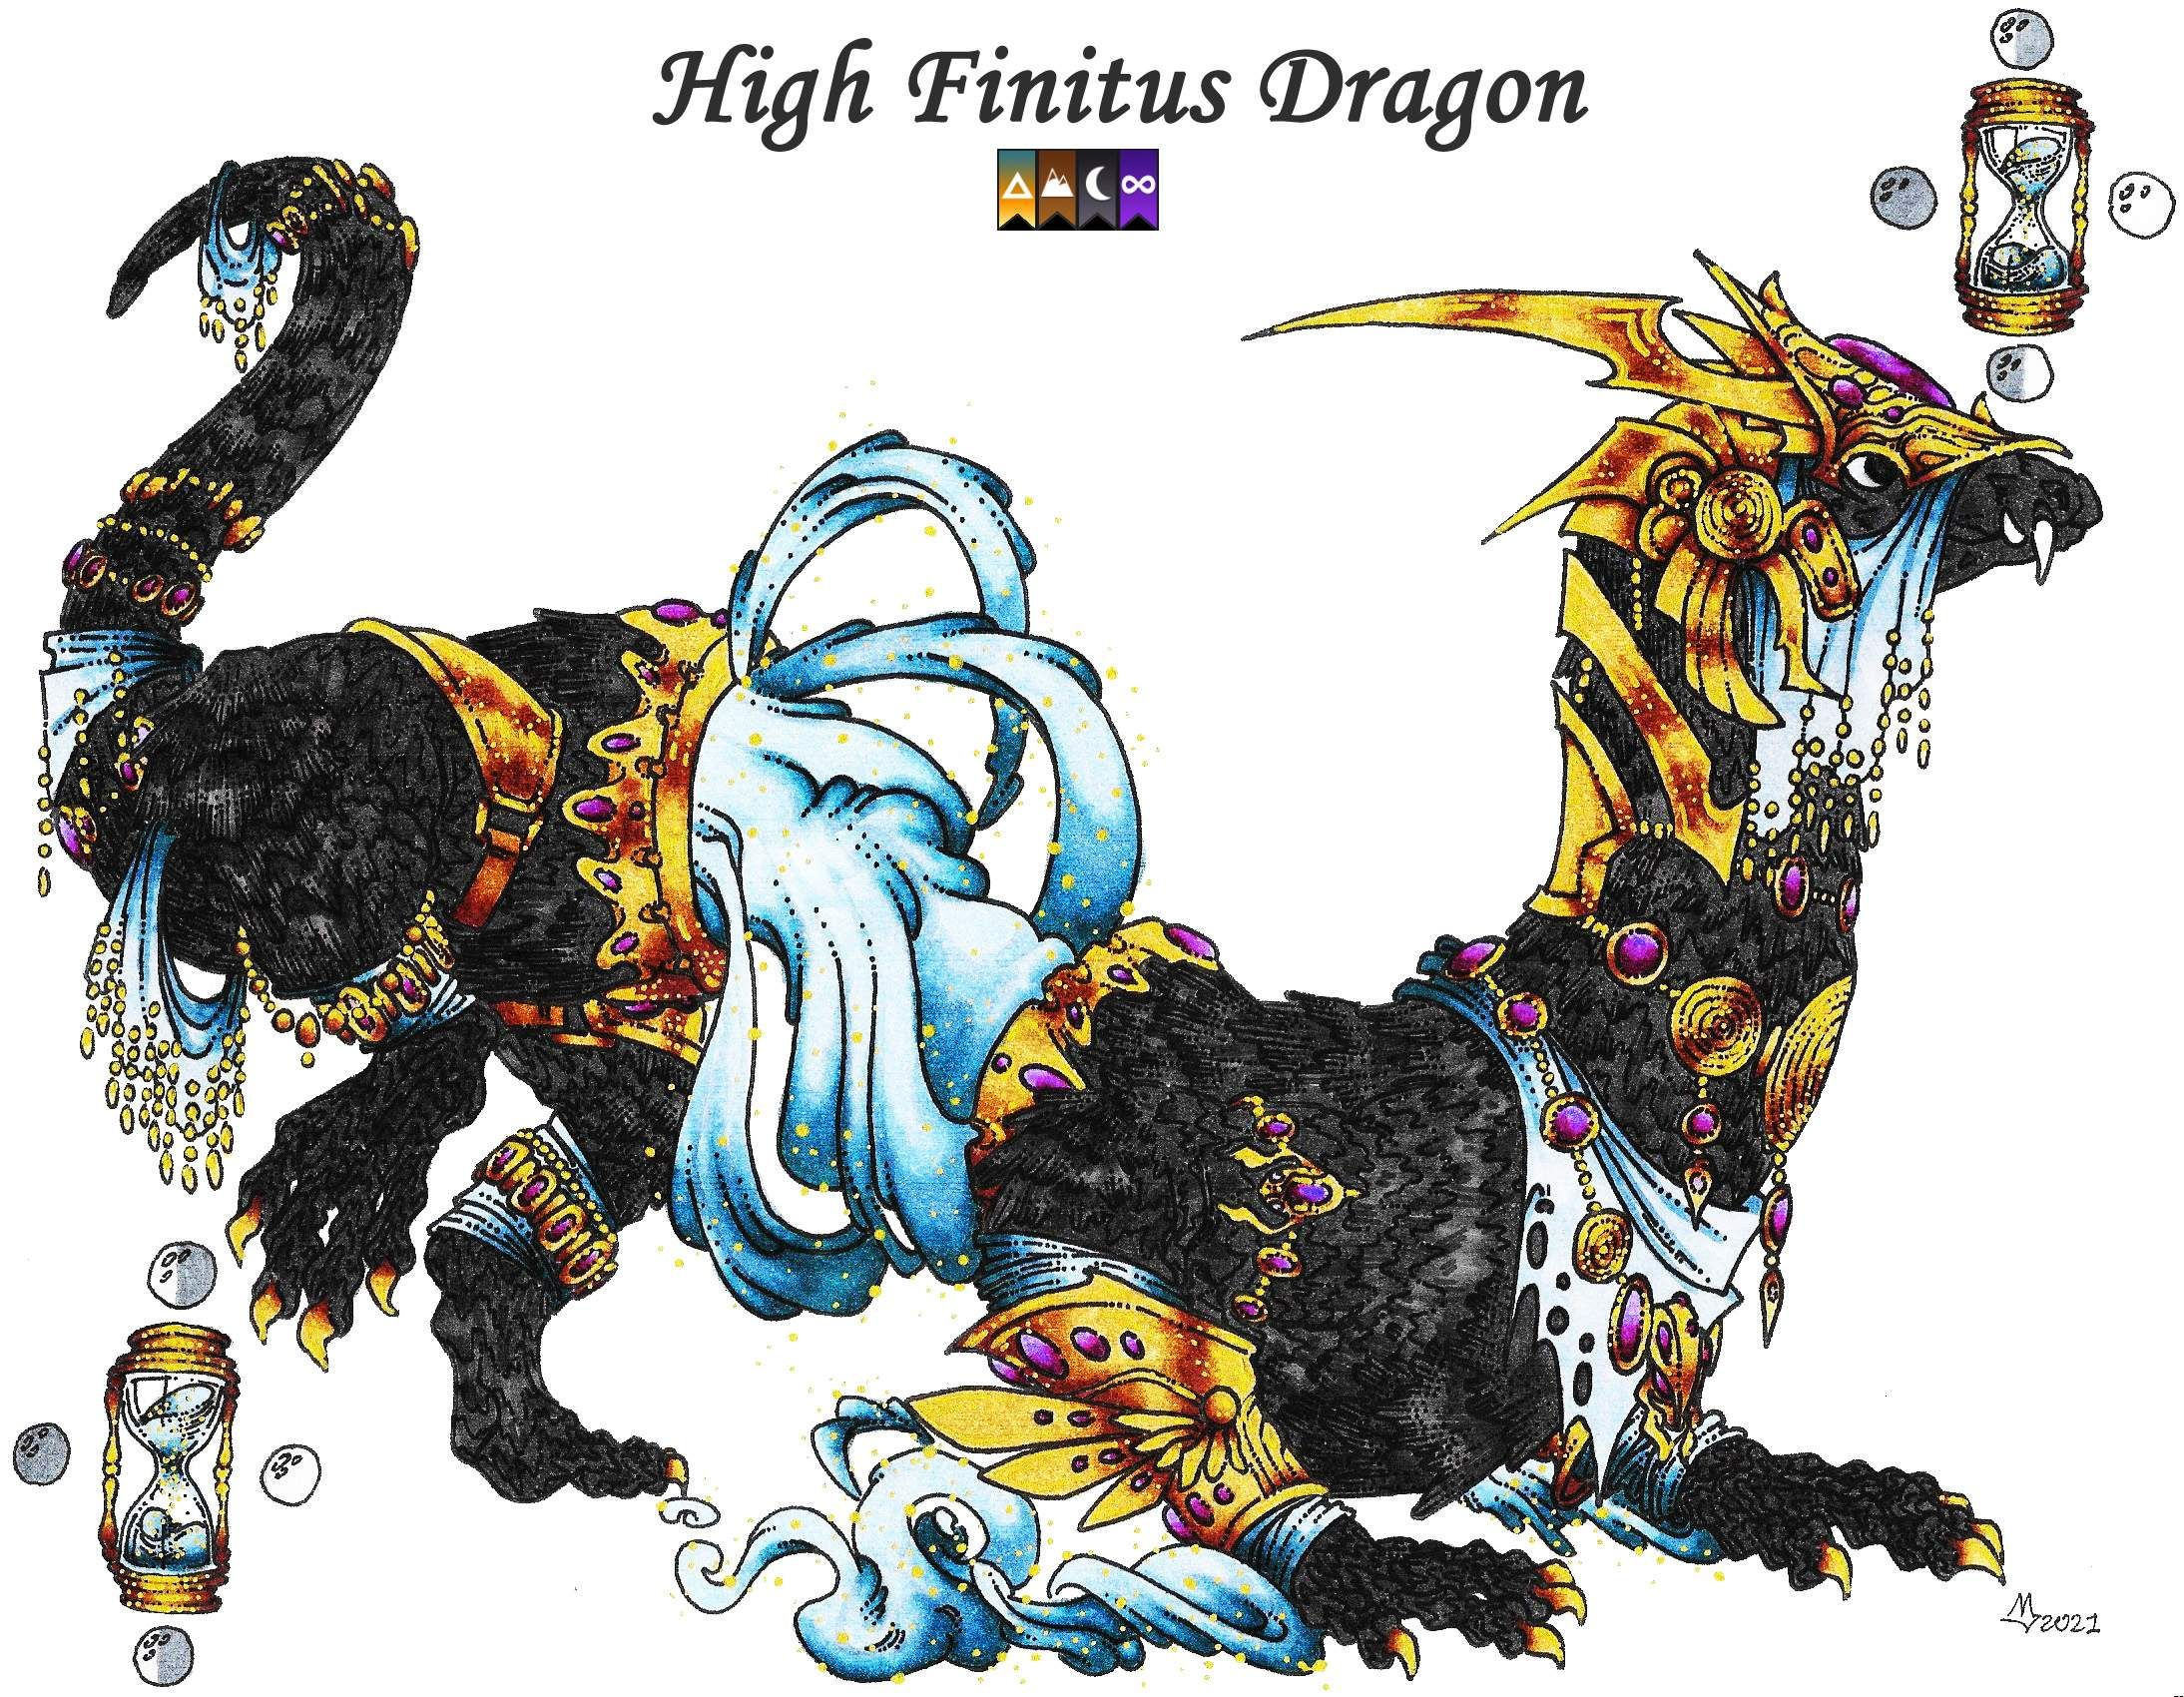 0_1617220693560_High Finitus Dragon, Anthony Valencia.jpg